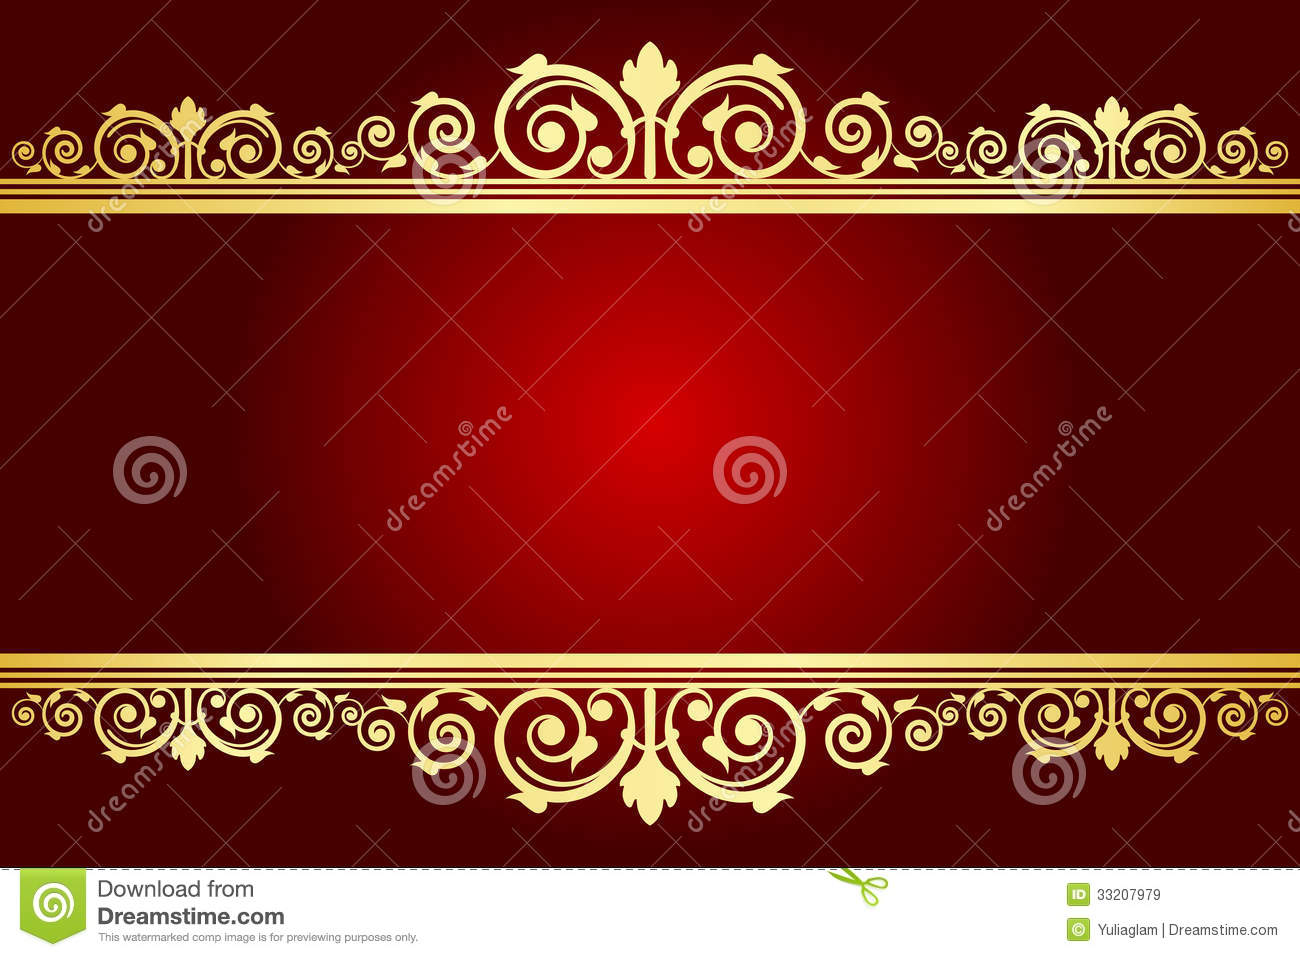 Http Www Dreamstime Com Royalty Free Stock Images Royal Background Decorated Frame Vector Image33207979